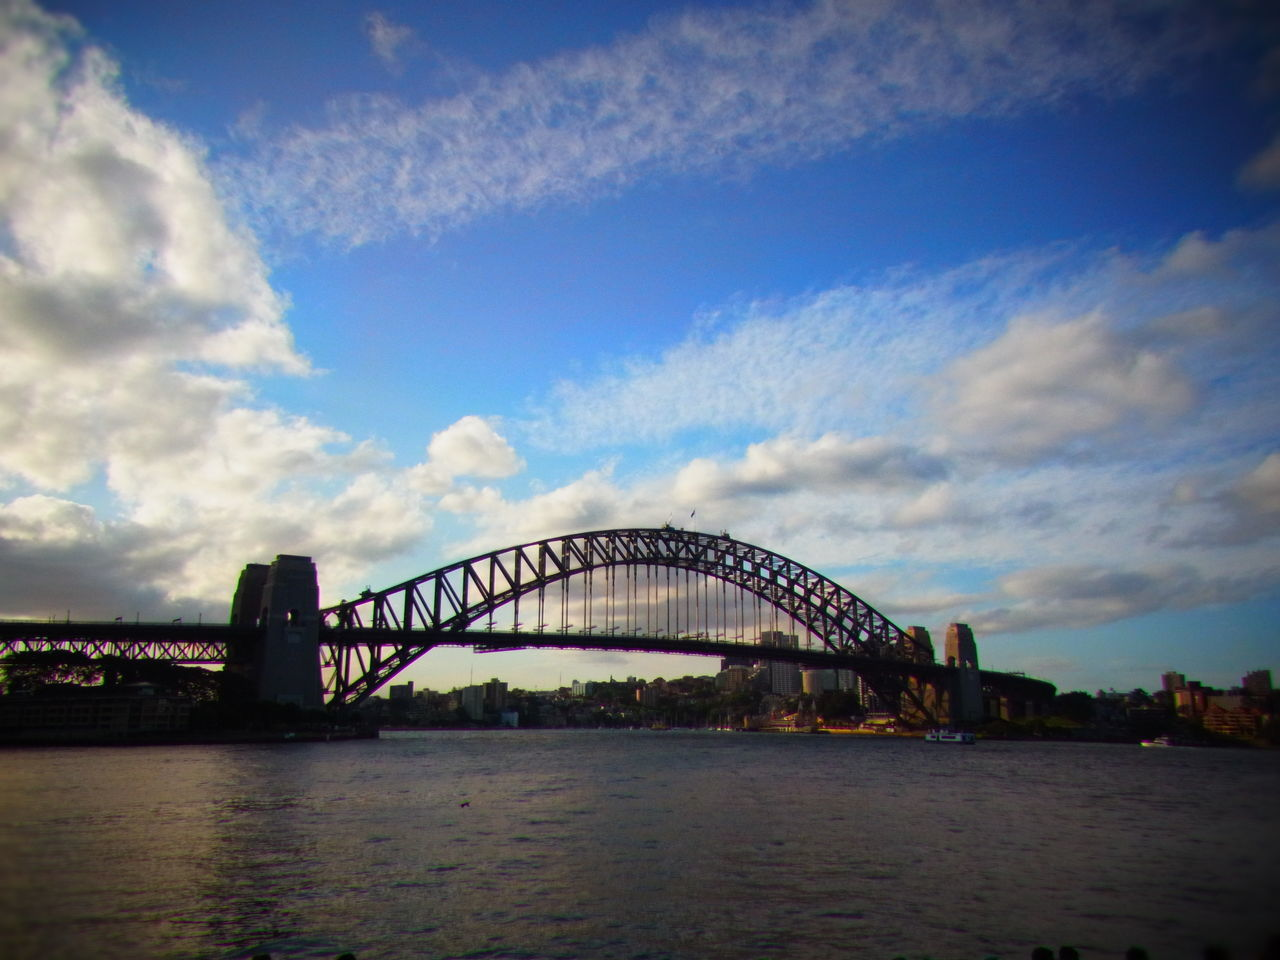 bridge - man made structure, connection, sky, architecture, built structure, river, cloud - sky, water, transportation, travel destinations, no people, outdoors, city, day, nature